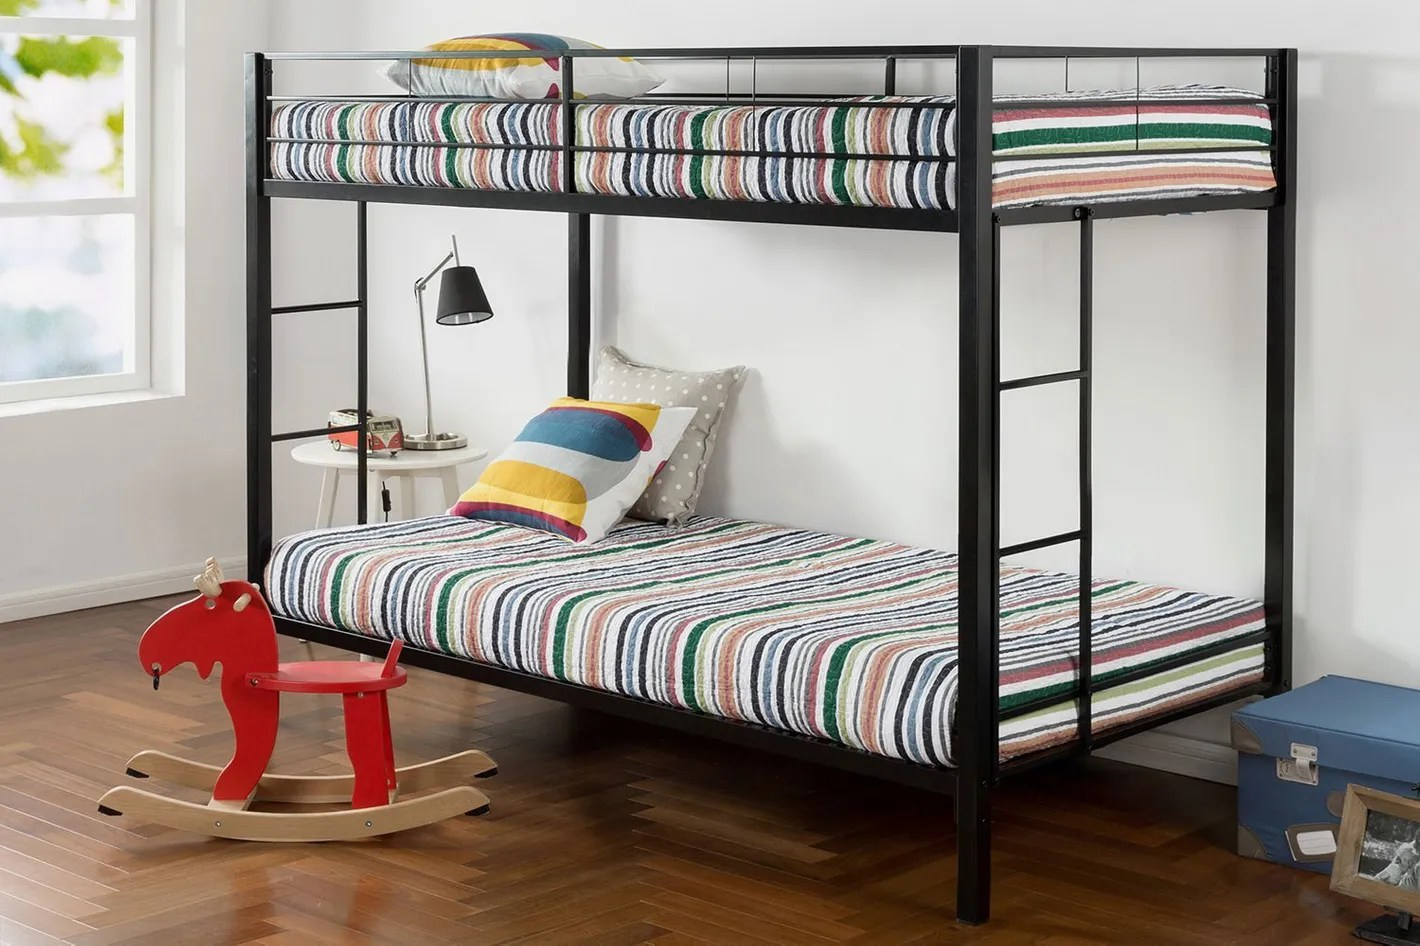 Double Bunks For Sale 10 Best Bunk Beds 2019